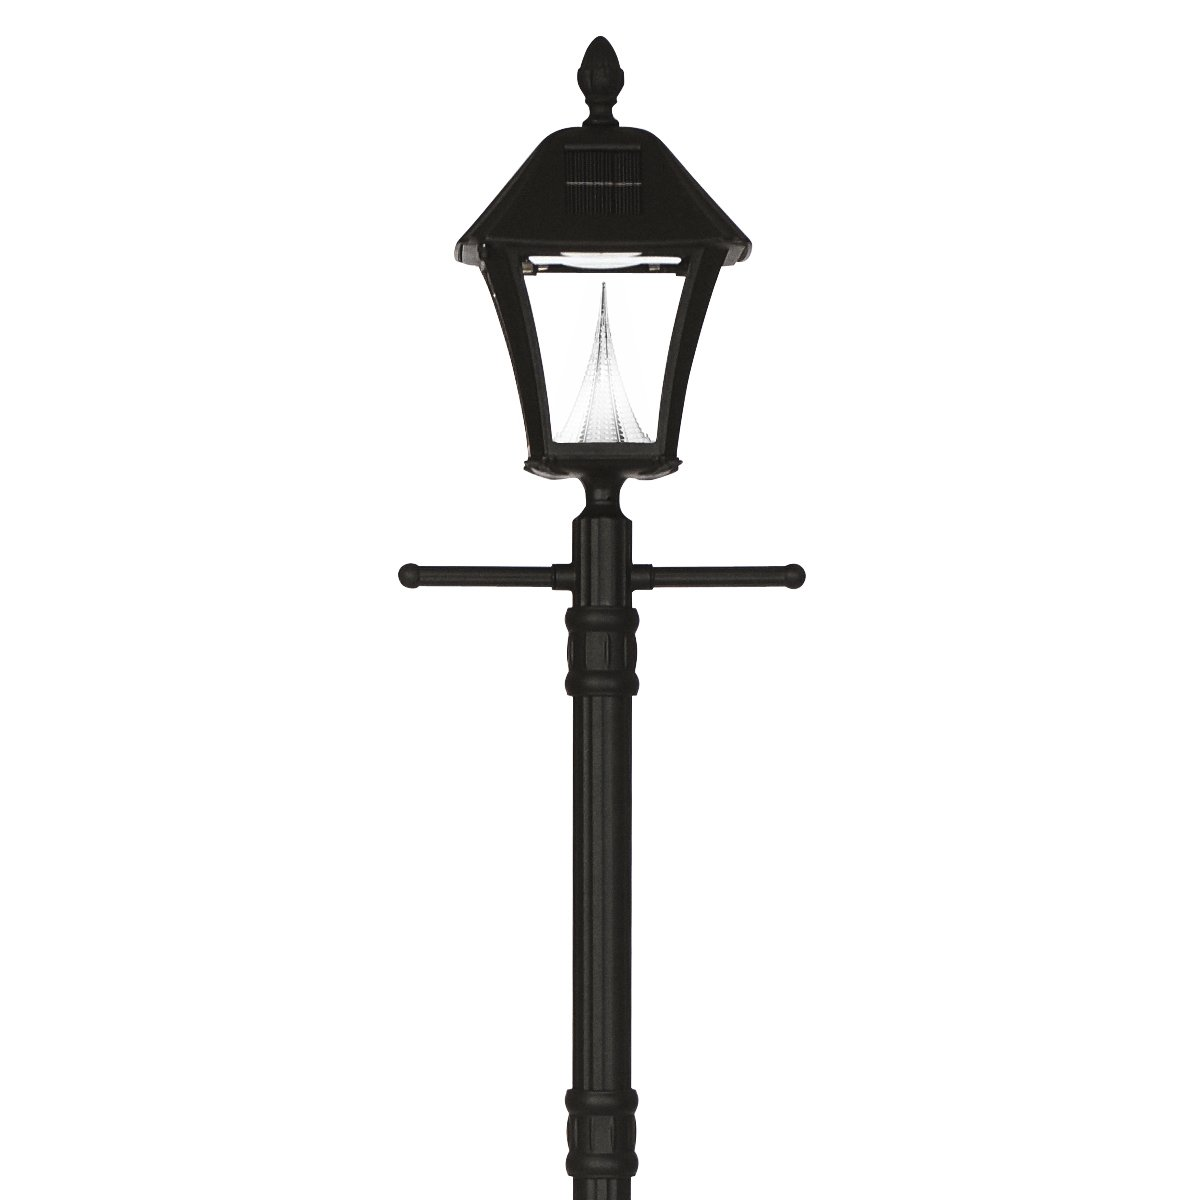 Amazon gama sonic baytown solar outdoor lamp post with planter amazon gama sonic baytown solar outdoor lamp post with planter gs 106pl black finish outdoor post lights garden outdoor mozeypictures Image collections